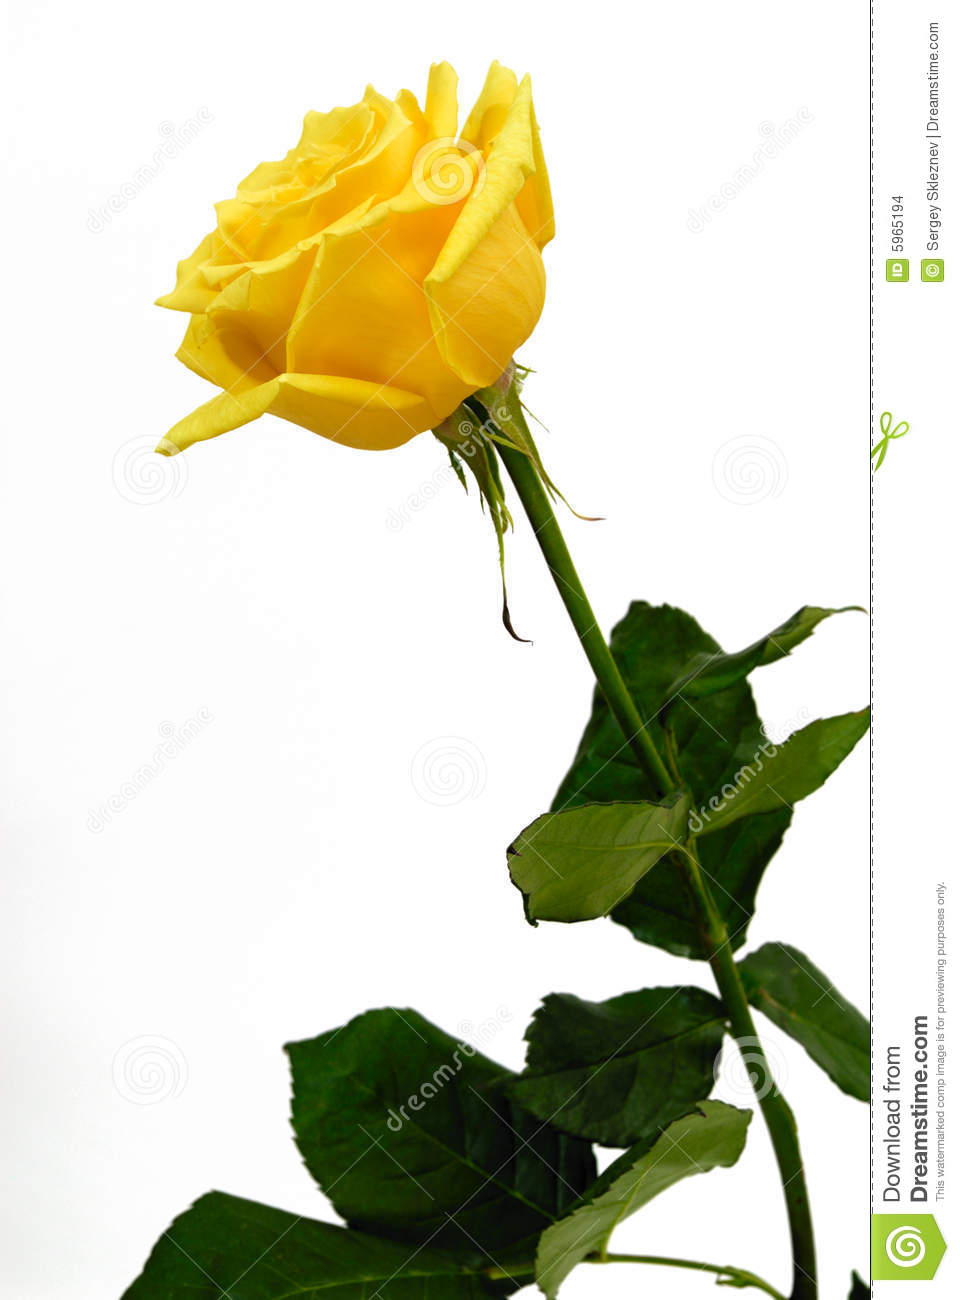 yellow rose stock photo. image of single, blossom, object - 5965194